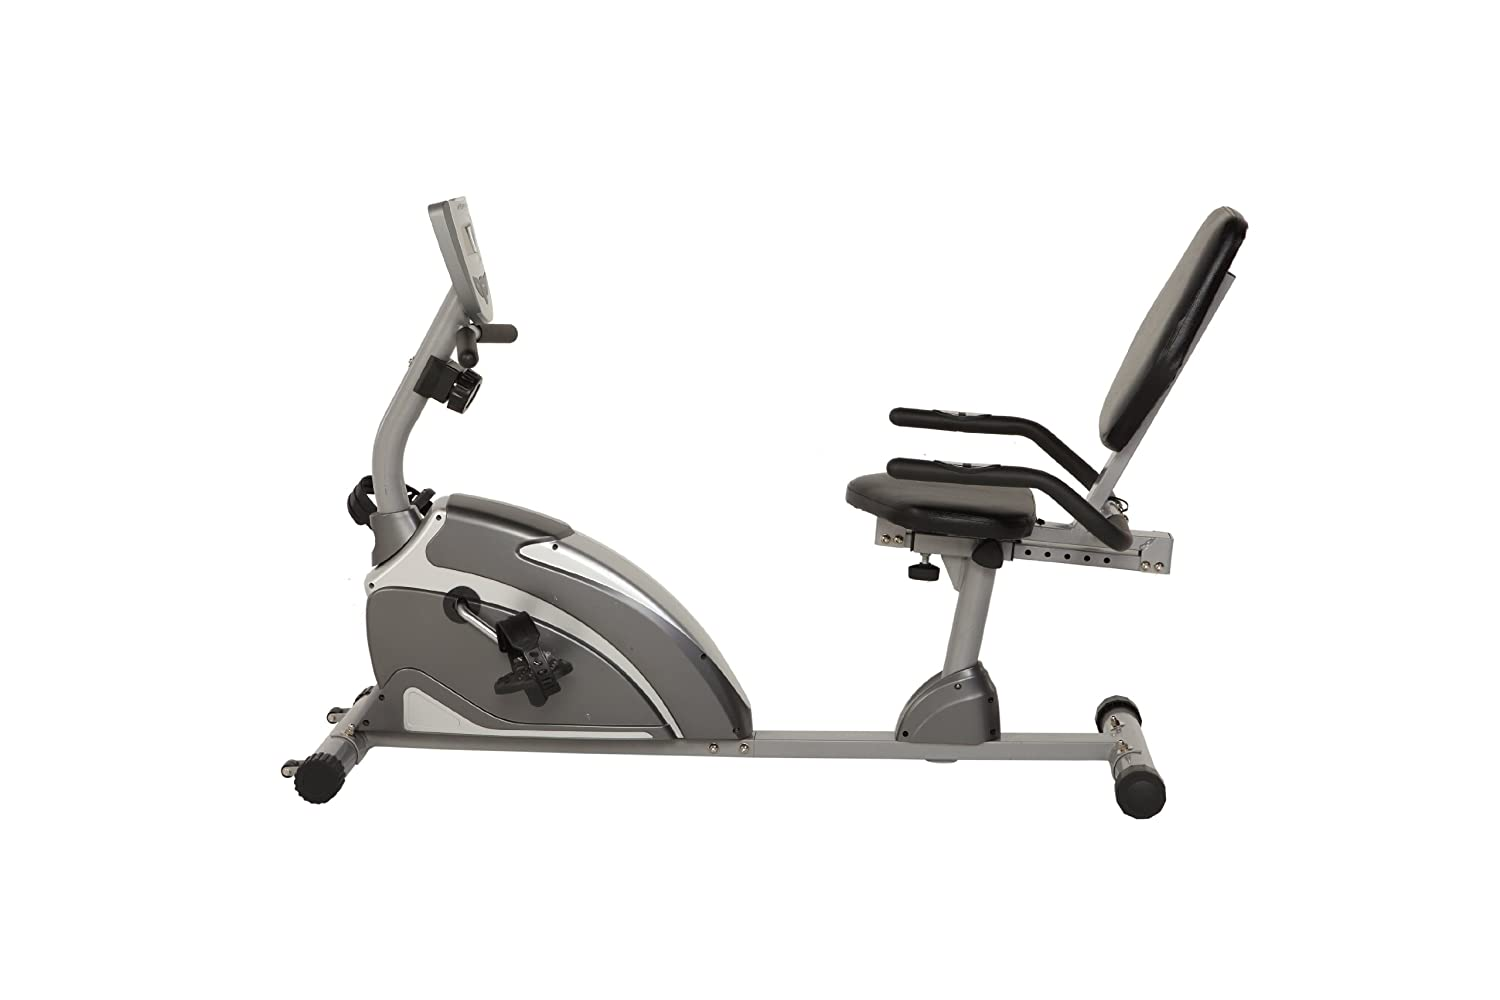 719w%2B0kuI9L. SL1500  Product Comparison: Exerpeutic 900xl vs 400xl Folding Exercise Bikes